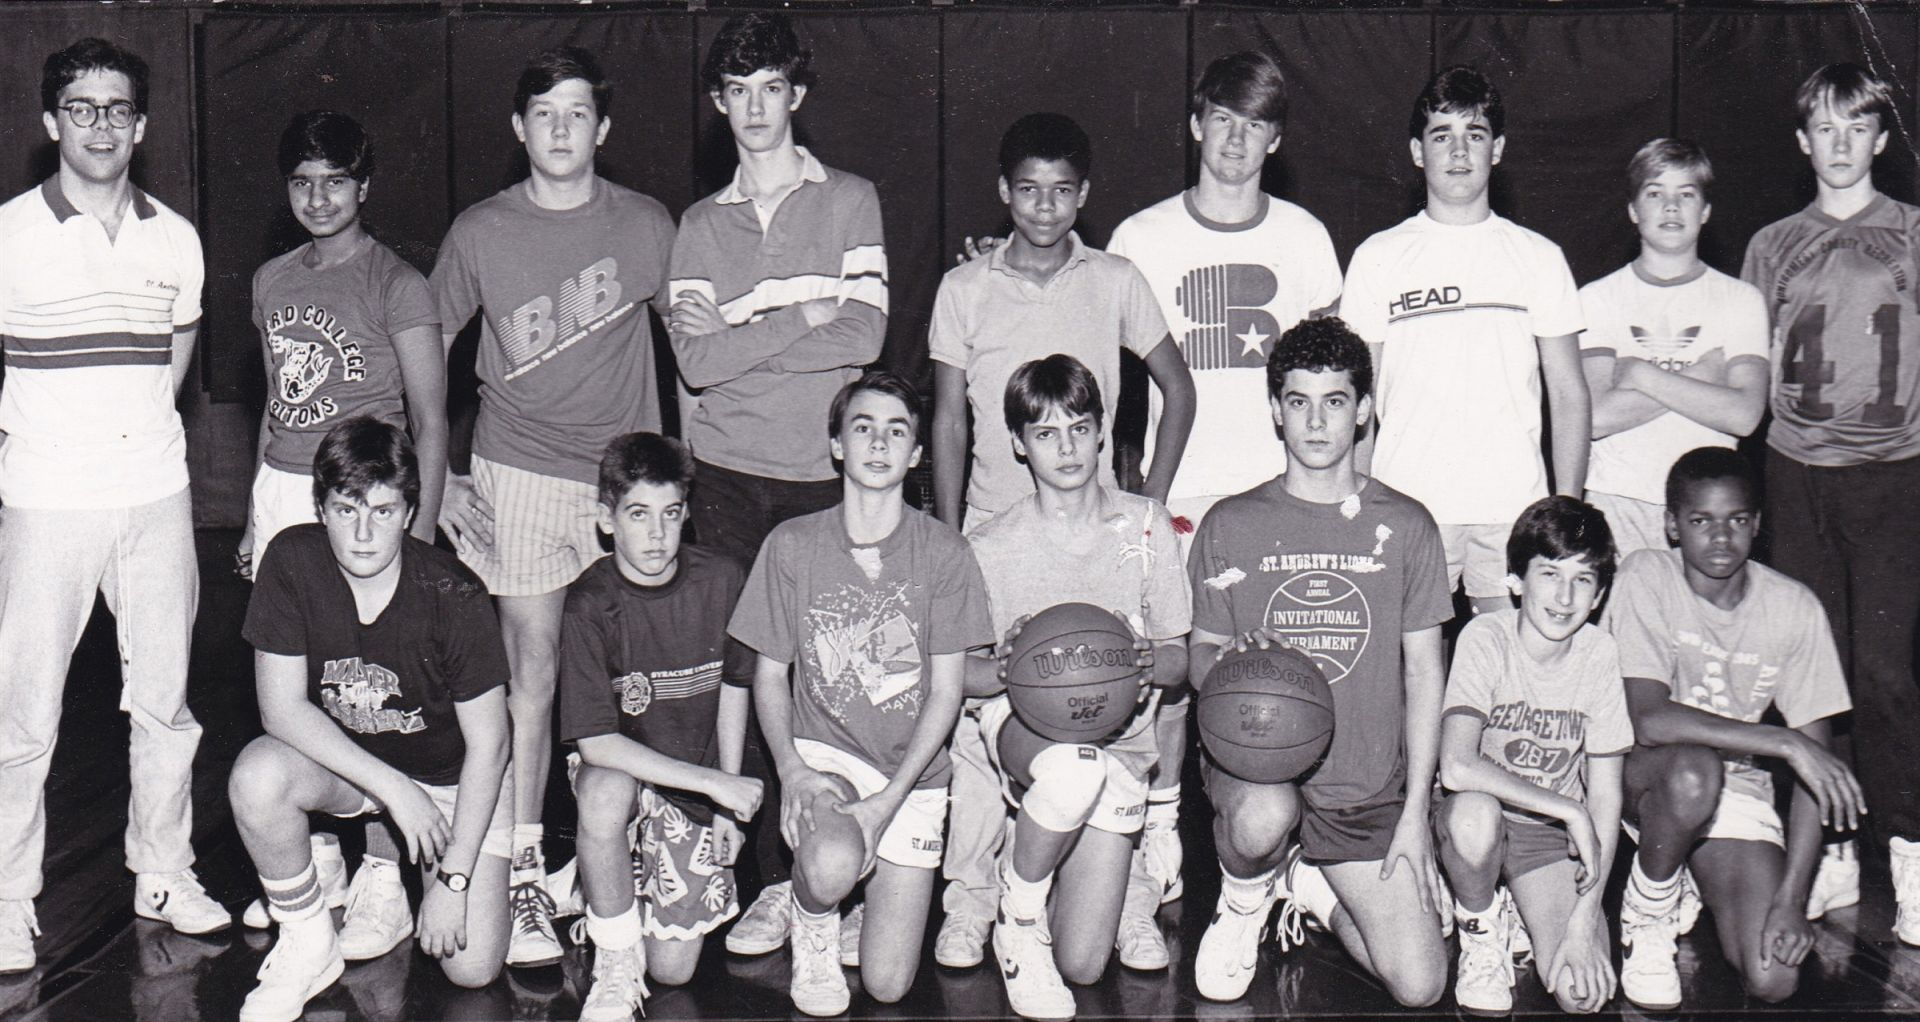 Students posing for team basketball photo - St. Andrew's Episcopal School